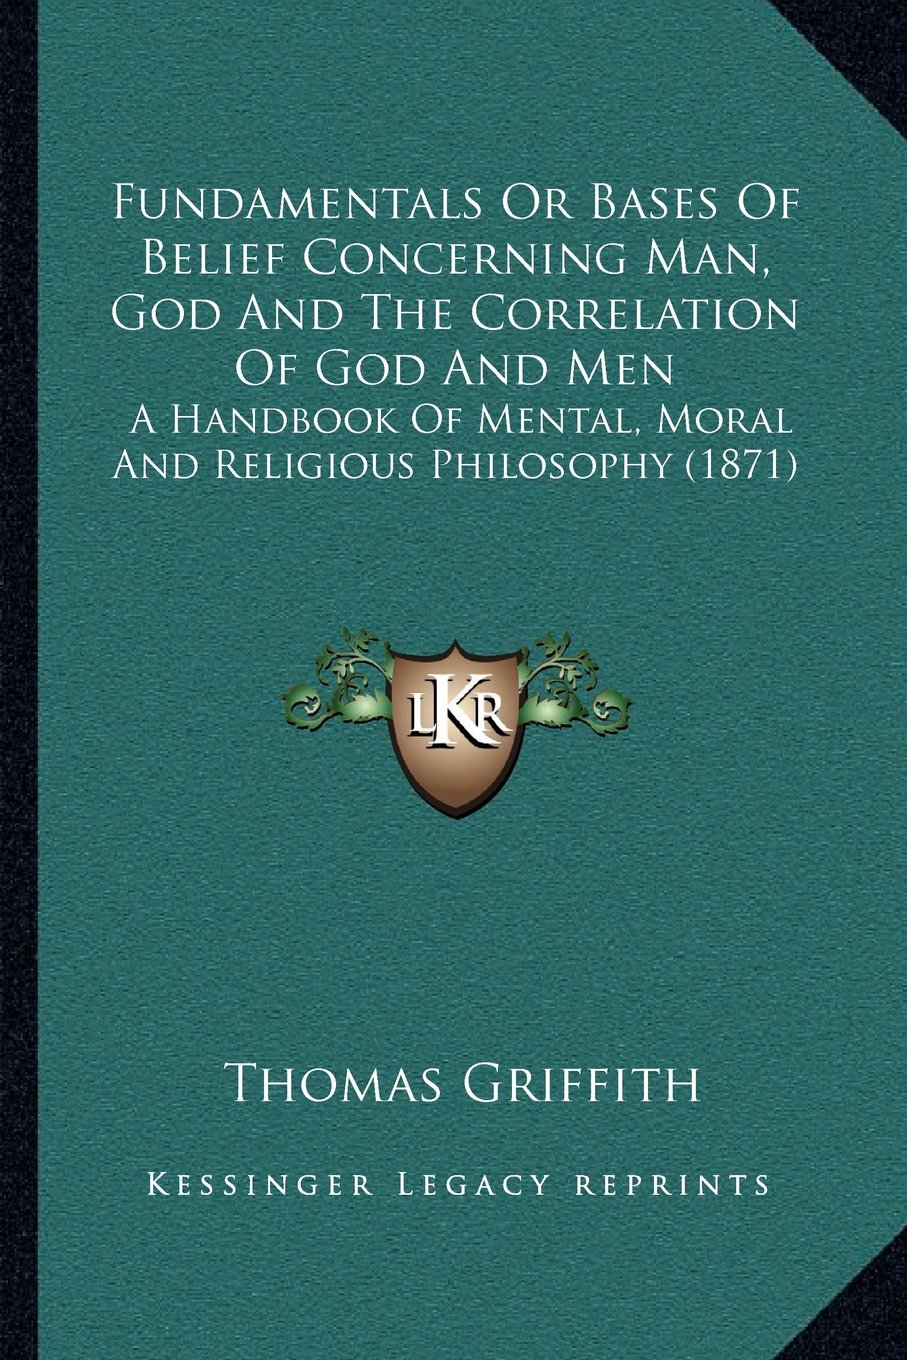 Download Fundamentals Or Bases Of Belief Concerning Man, God And The Correlation Of God And Men: A Handbook Of Mental, Moral And Religious Philosophy (1871) PDF